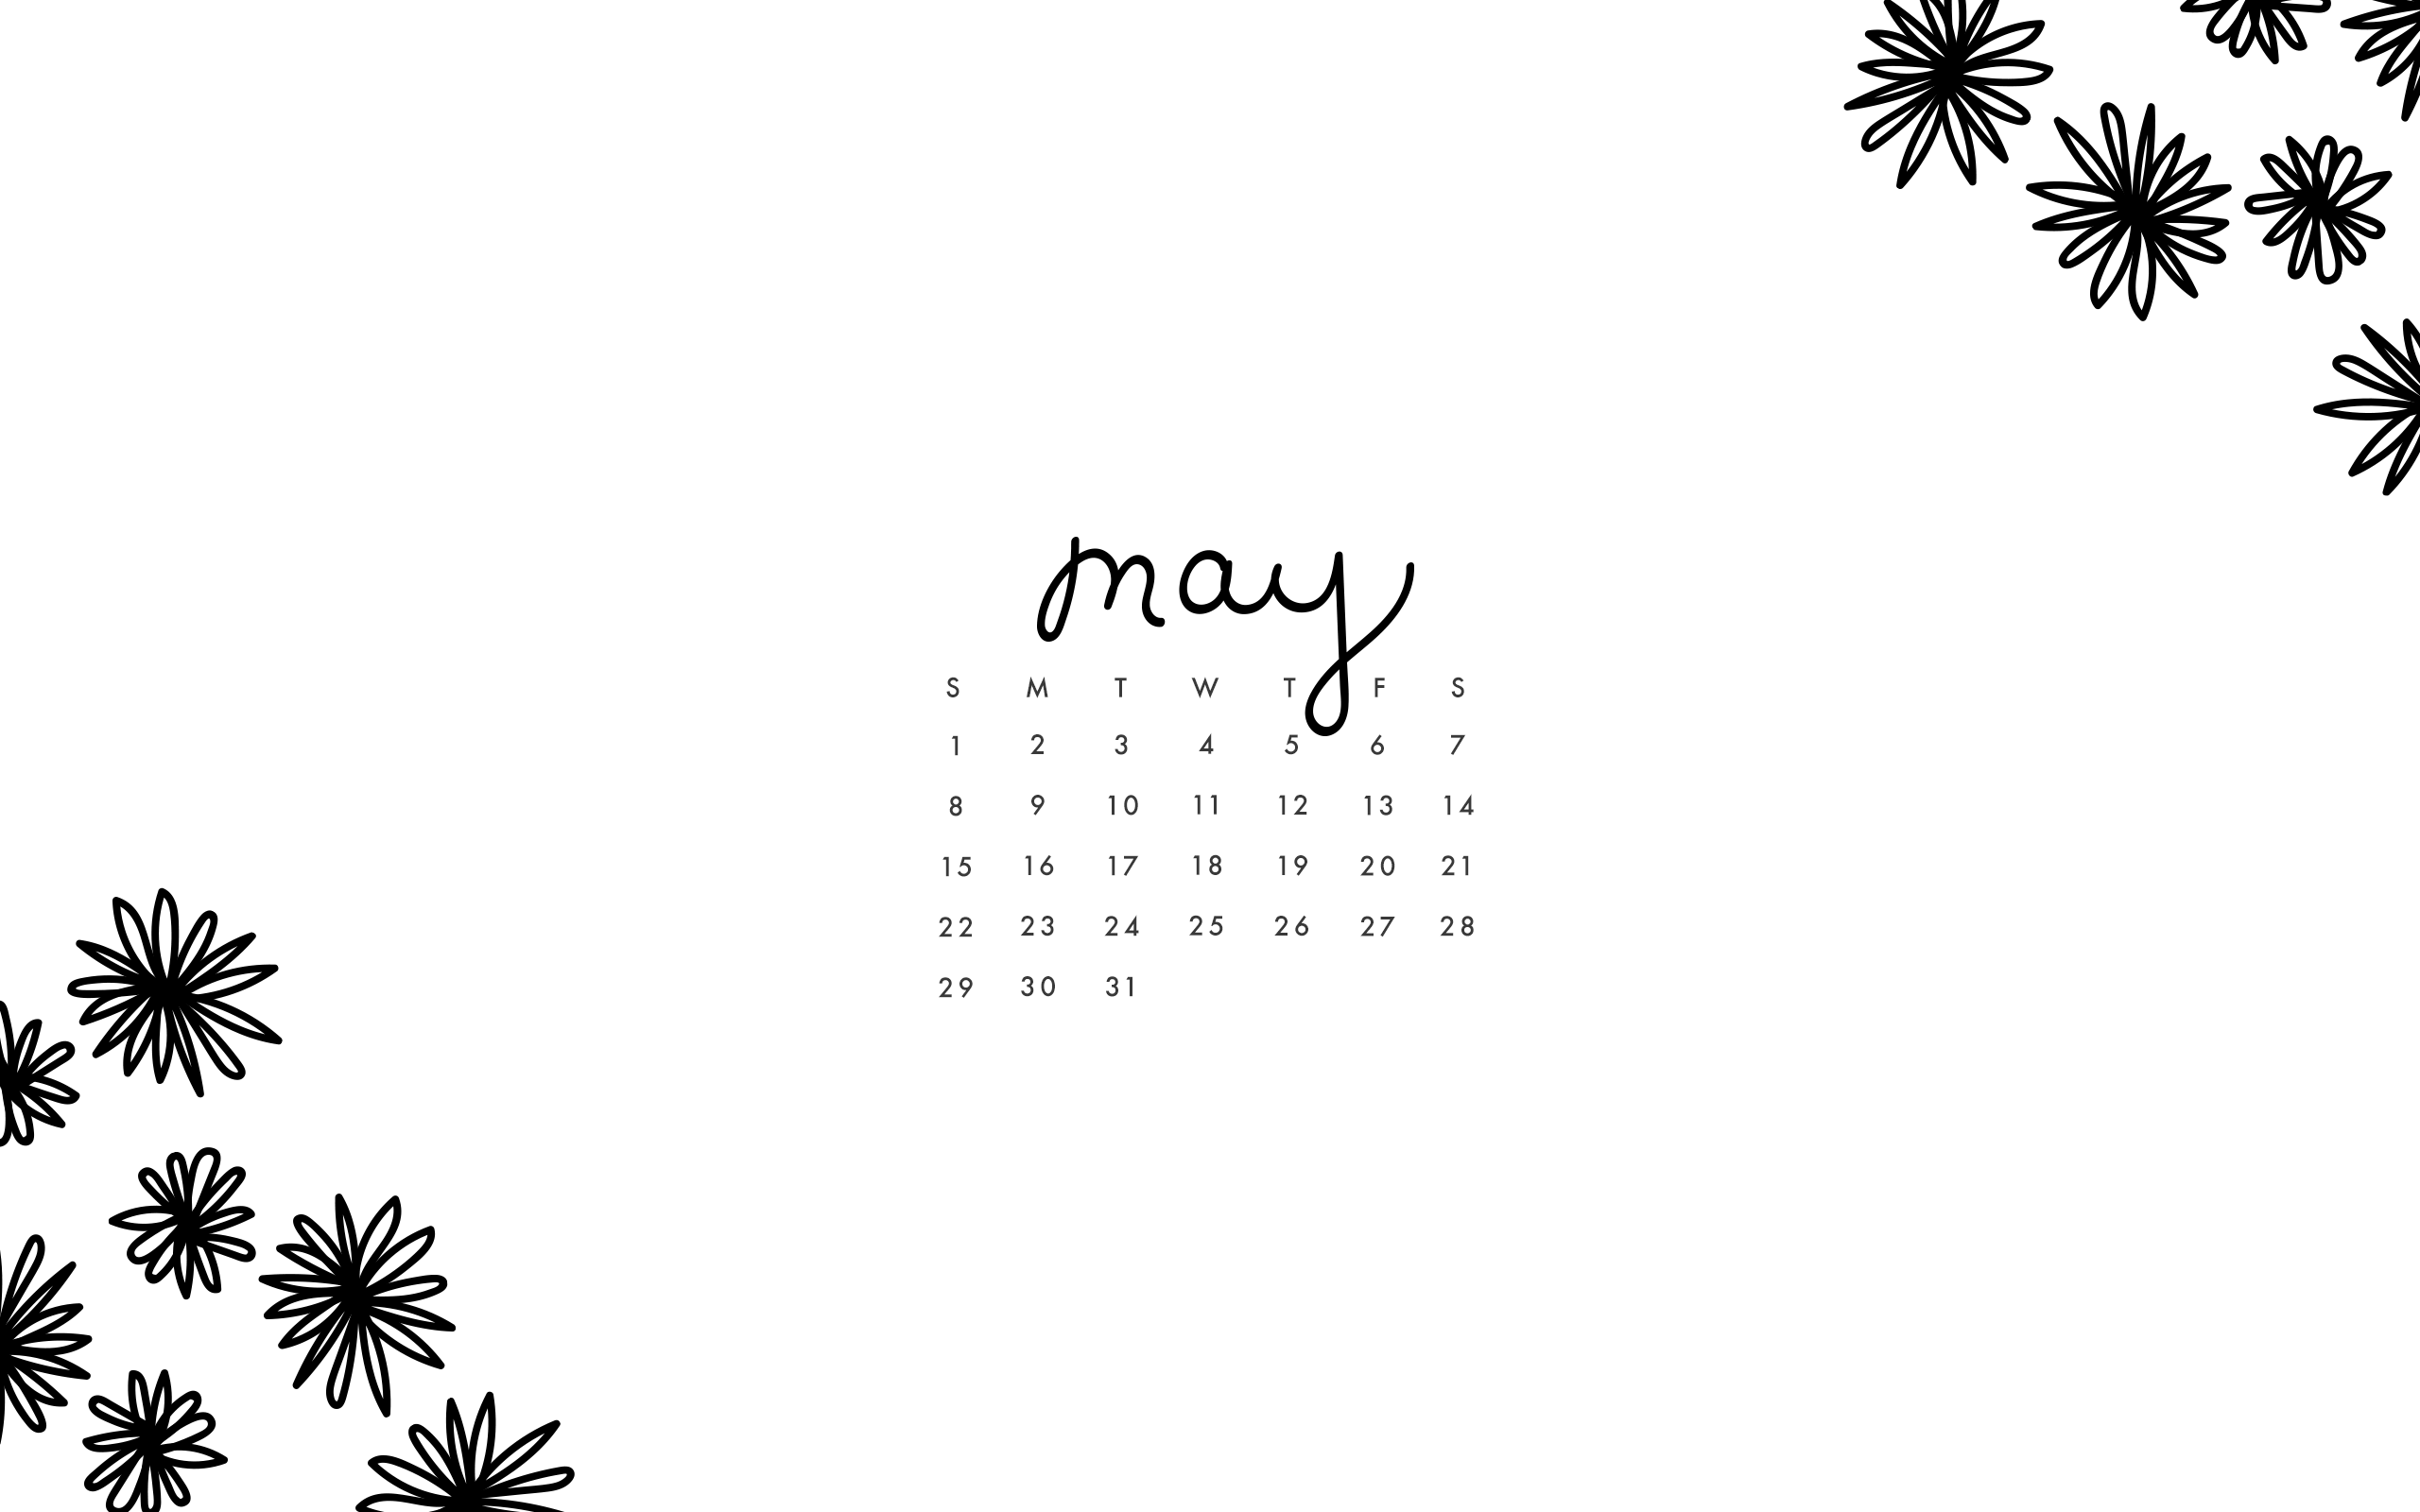 May Calendar Desktop : May calendar desktop download the market